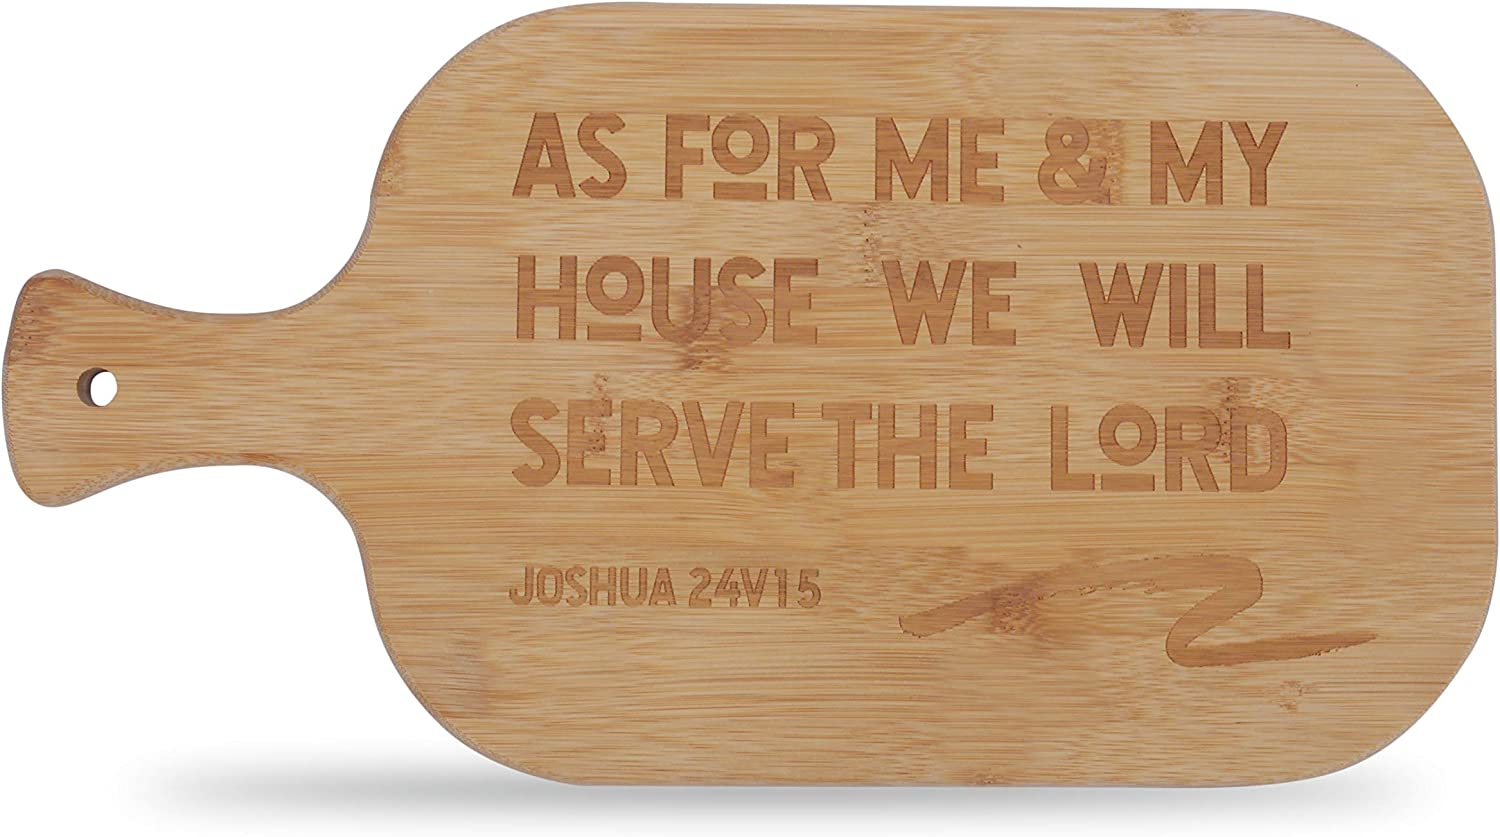 epiphaneia Christian Bamboo Cutting Fashion Board As Special Campaign Bible Scripture Fo